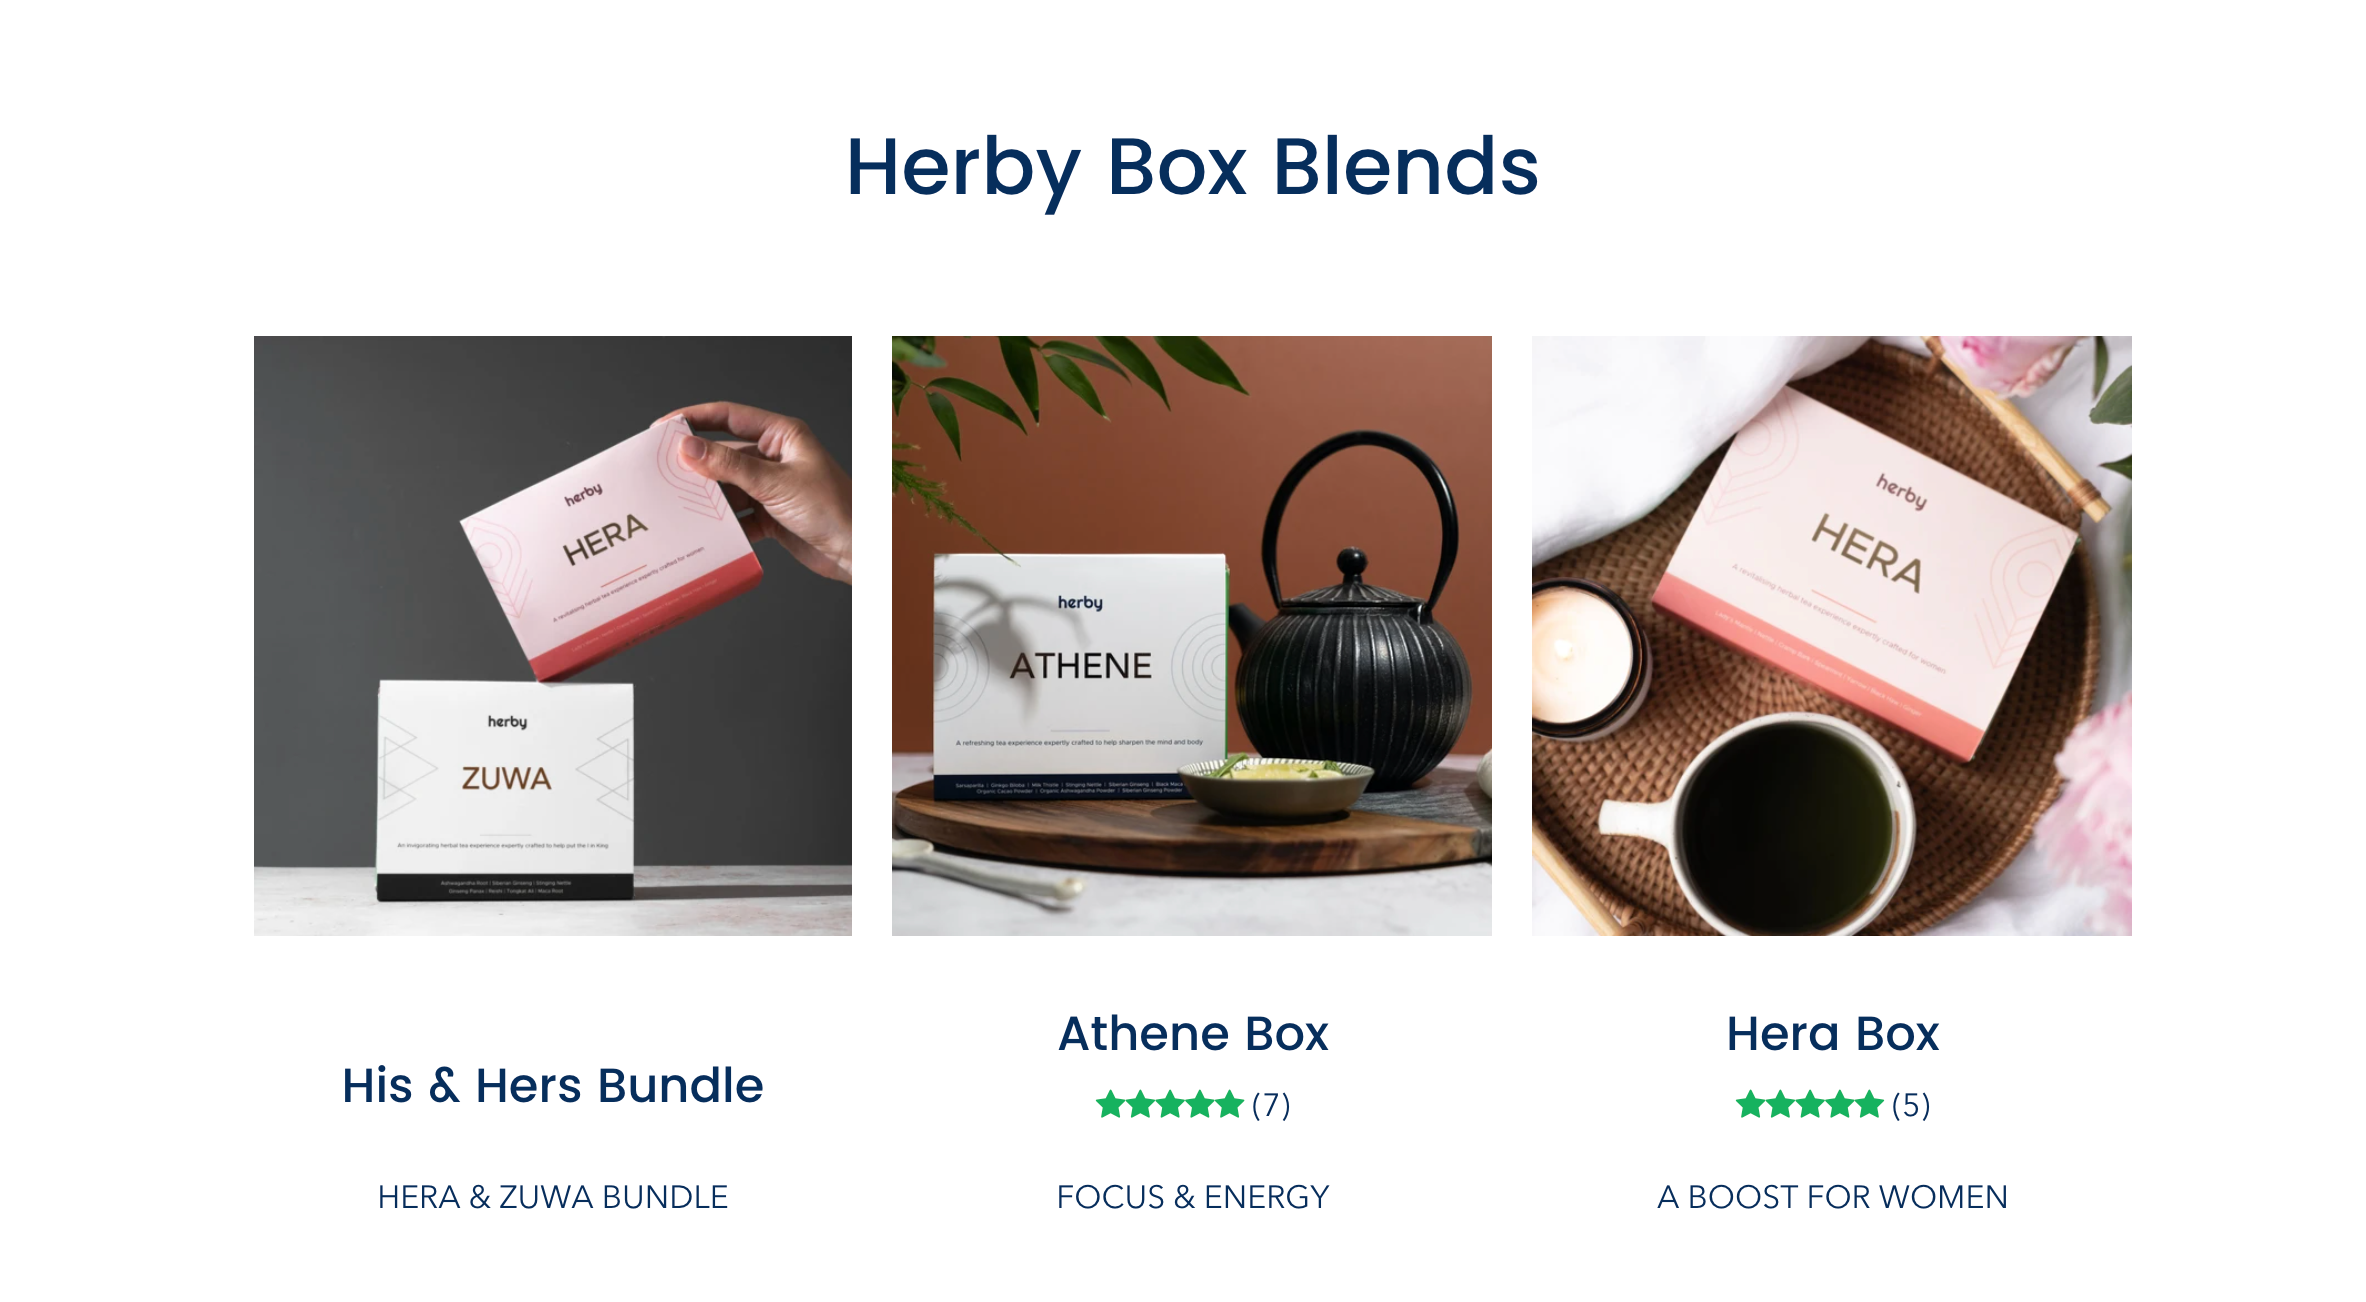 The His & Hers Bundle, Athene Box, and the Hera Box